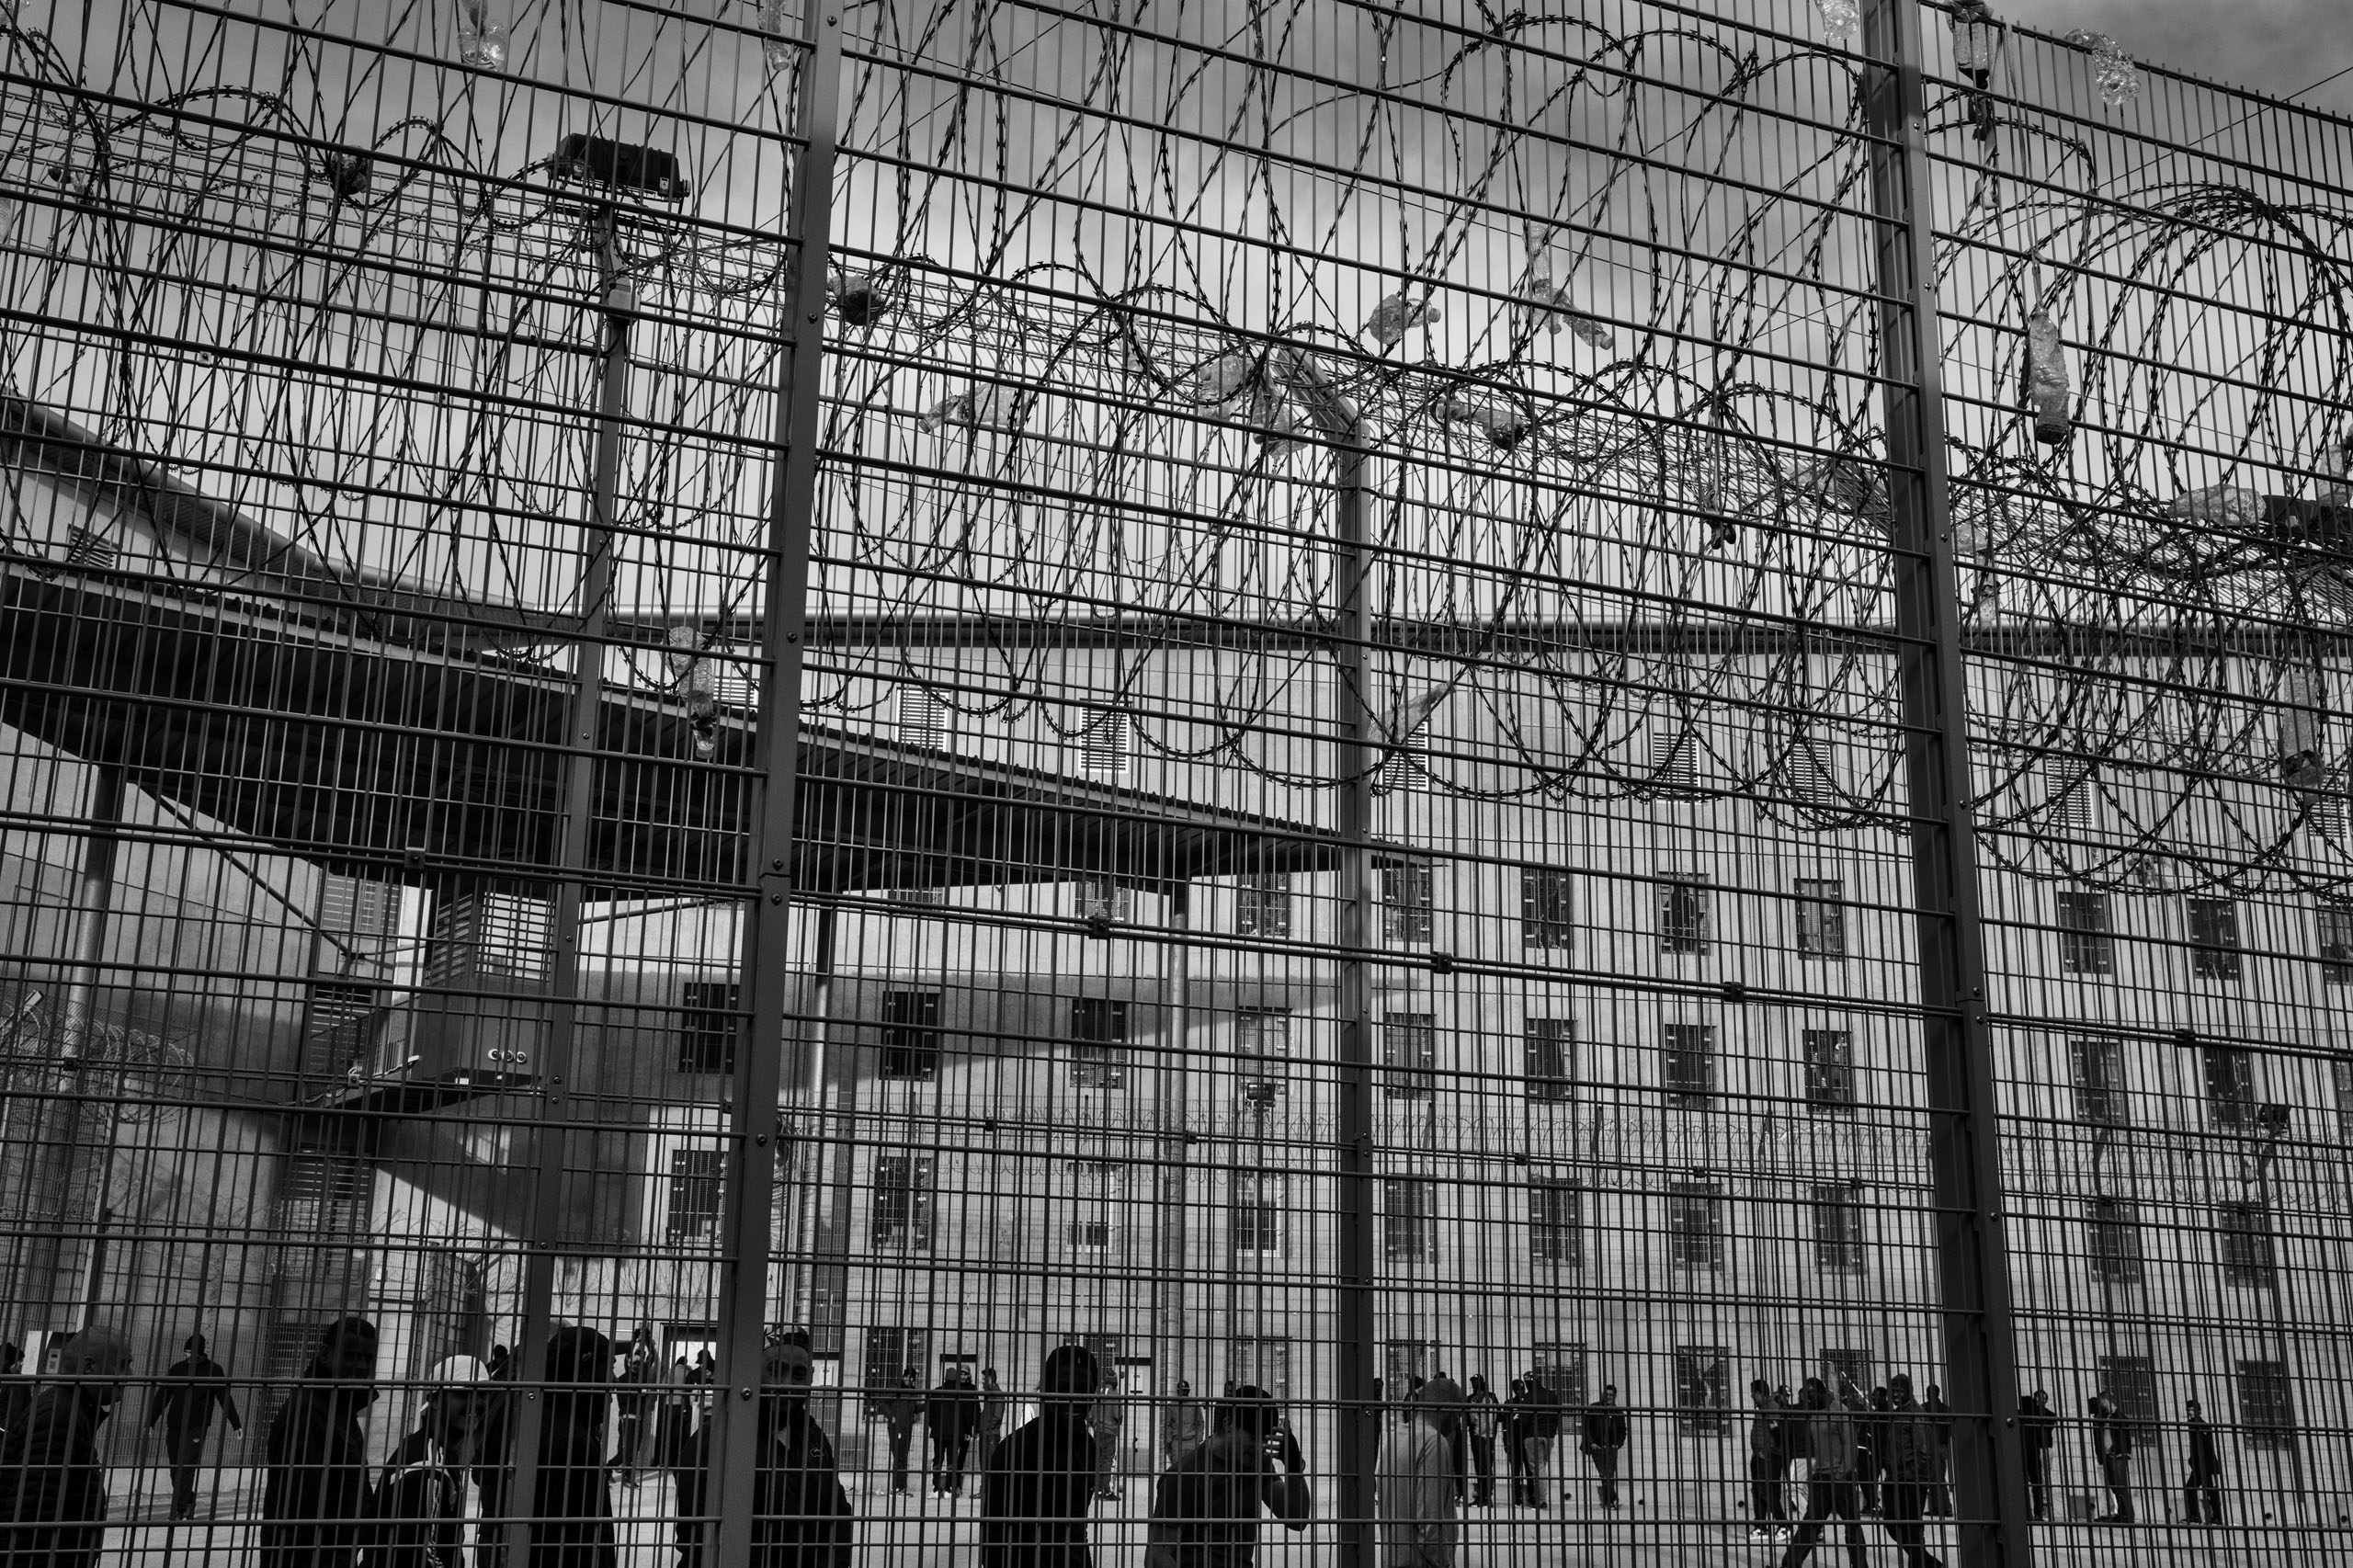 Prisoners walk in the courtyard of the Meaux-Chauconin penitentiary, 35 miles northeast of Paris, Nov. 24, 2016,   Overcrowding in French prisons, in which over half the population is estimated to be Muslim, is a serious political issue in France.